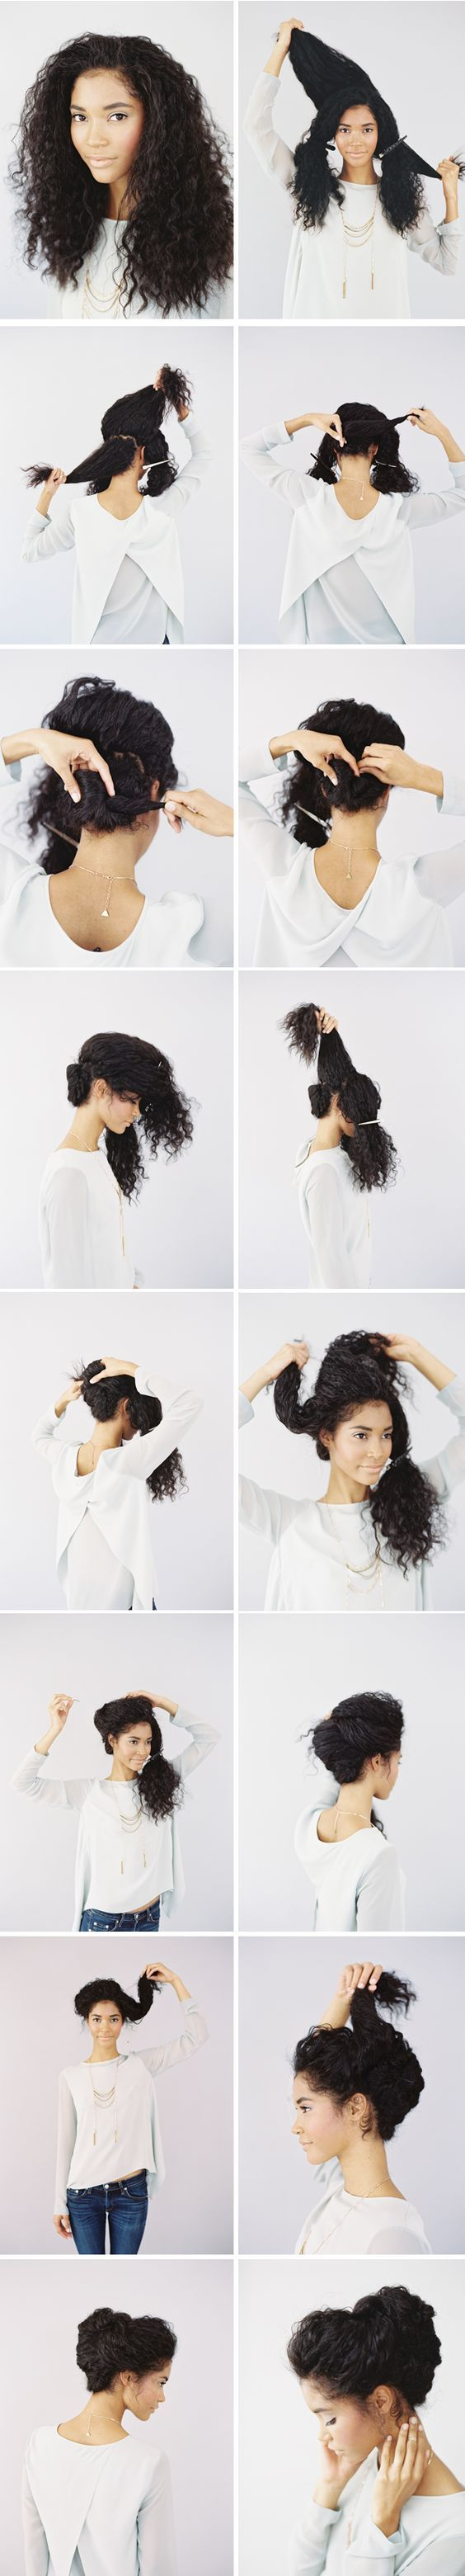 Tips & Tricks for Natural Curly Hair A lot of women have naturally curly hair, and while this texture is lovable and feminine, there are a lot of annoying details that can get in the way. Usually younger women have natural curls that look pe